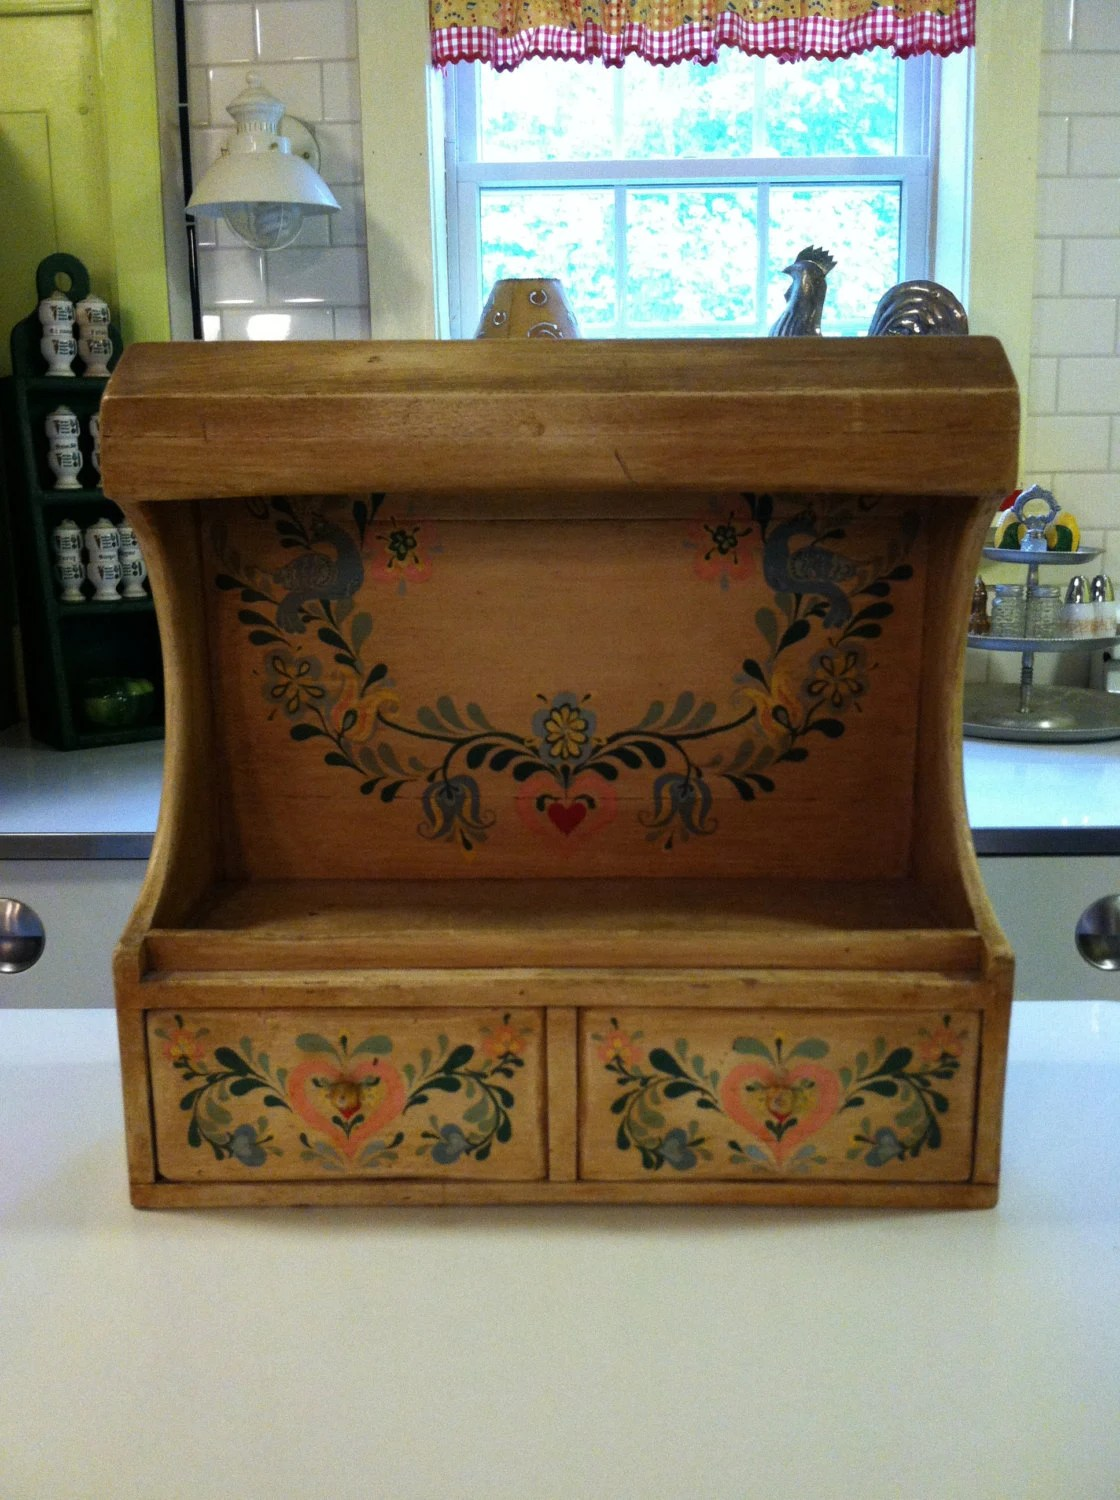 Antique Tole Painted Wooden Spice Rack With Pull Out Drawer